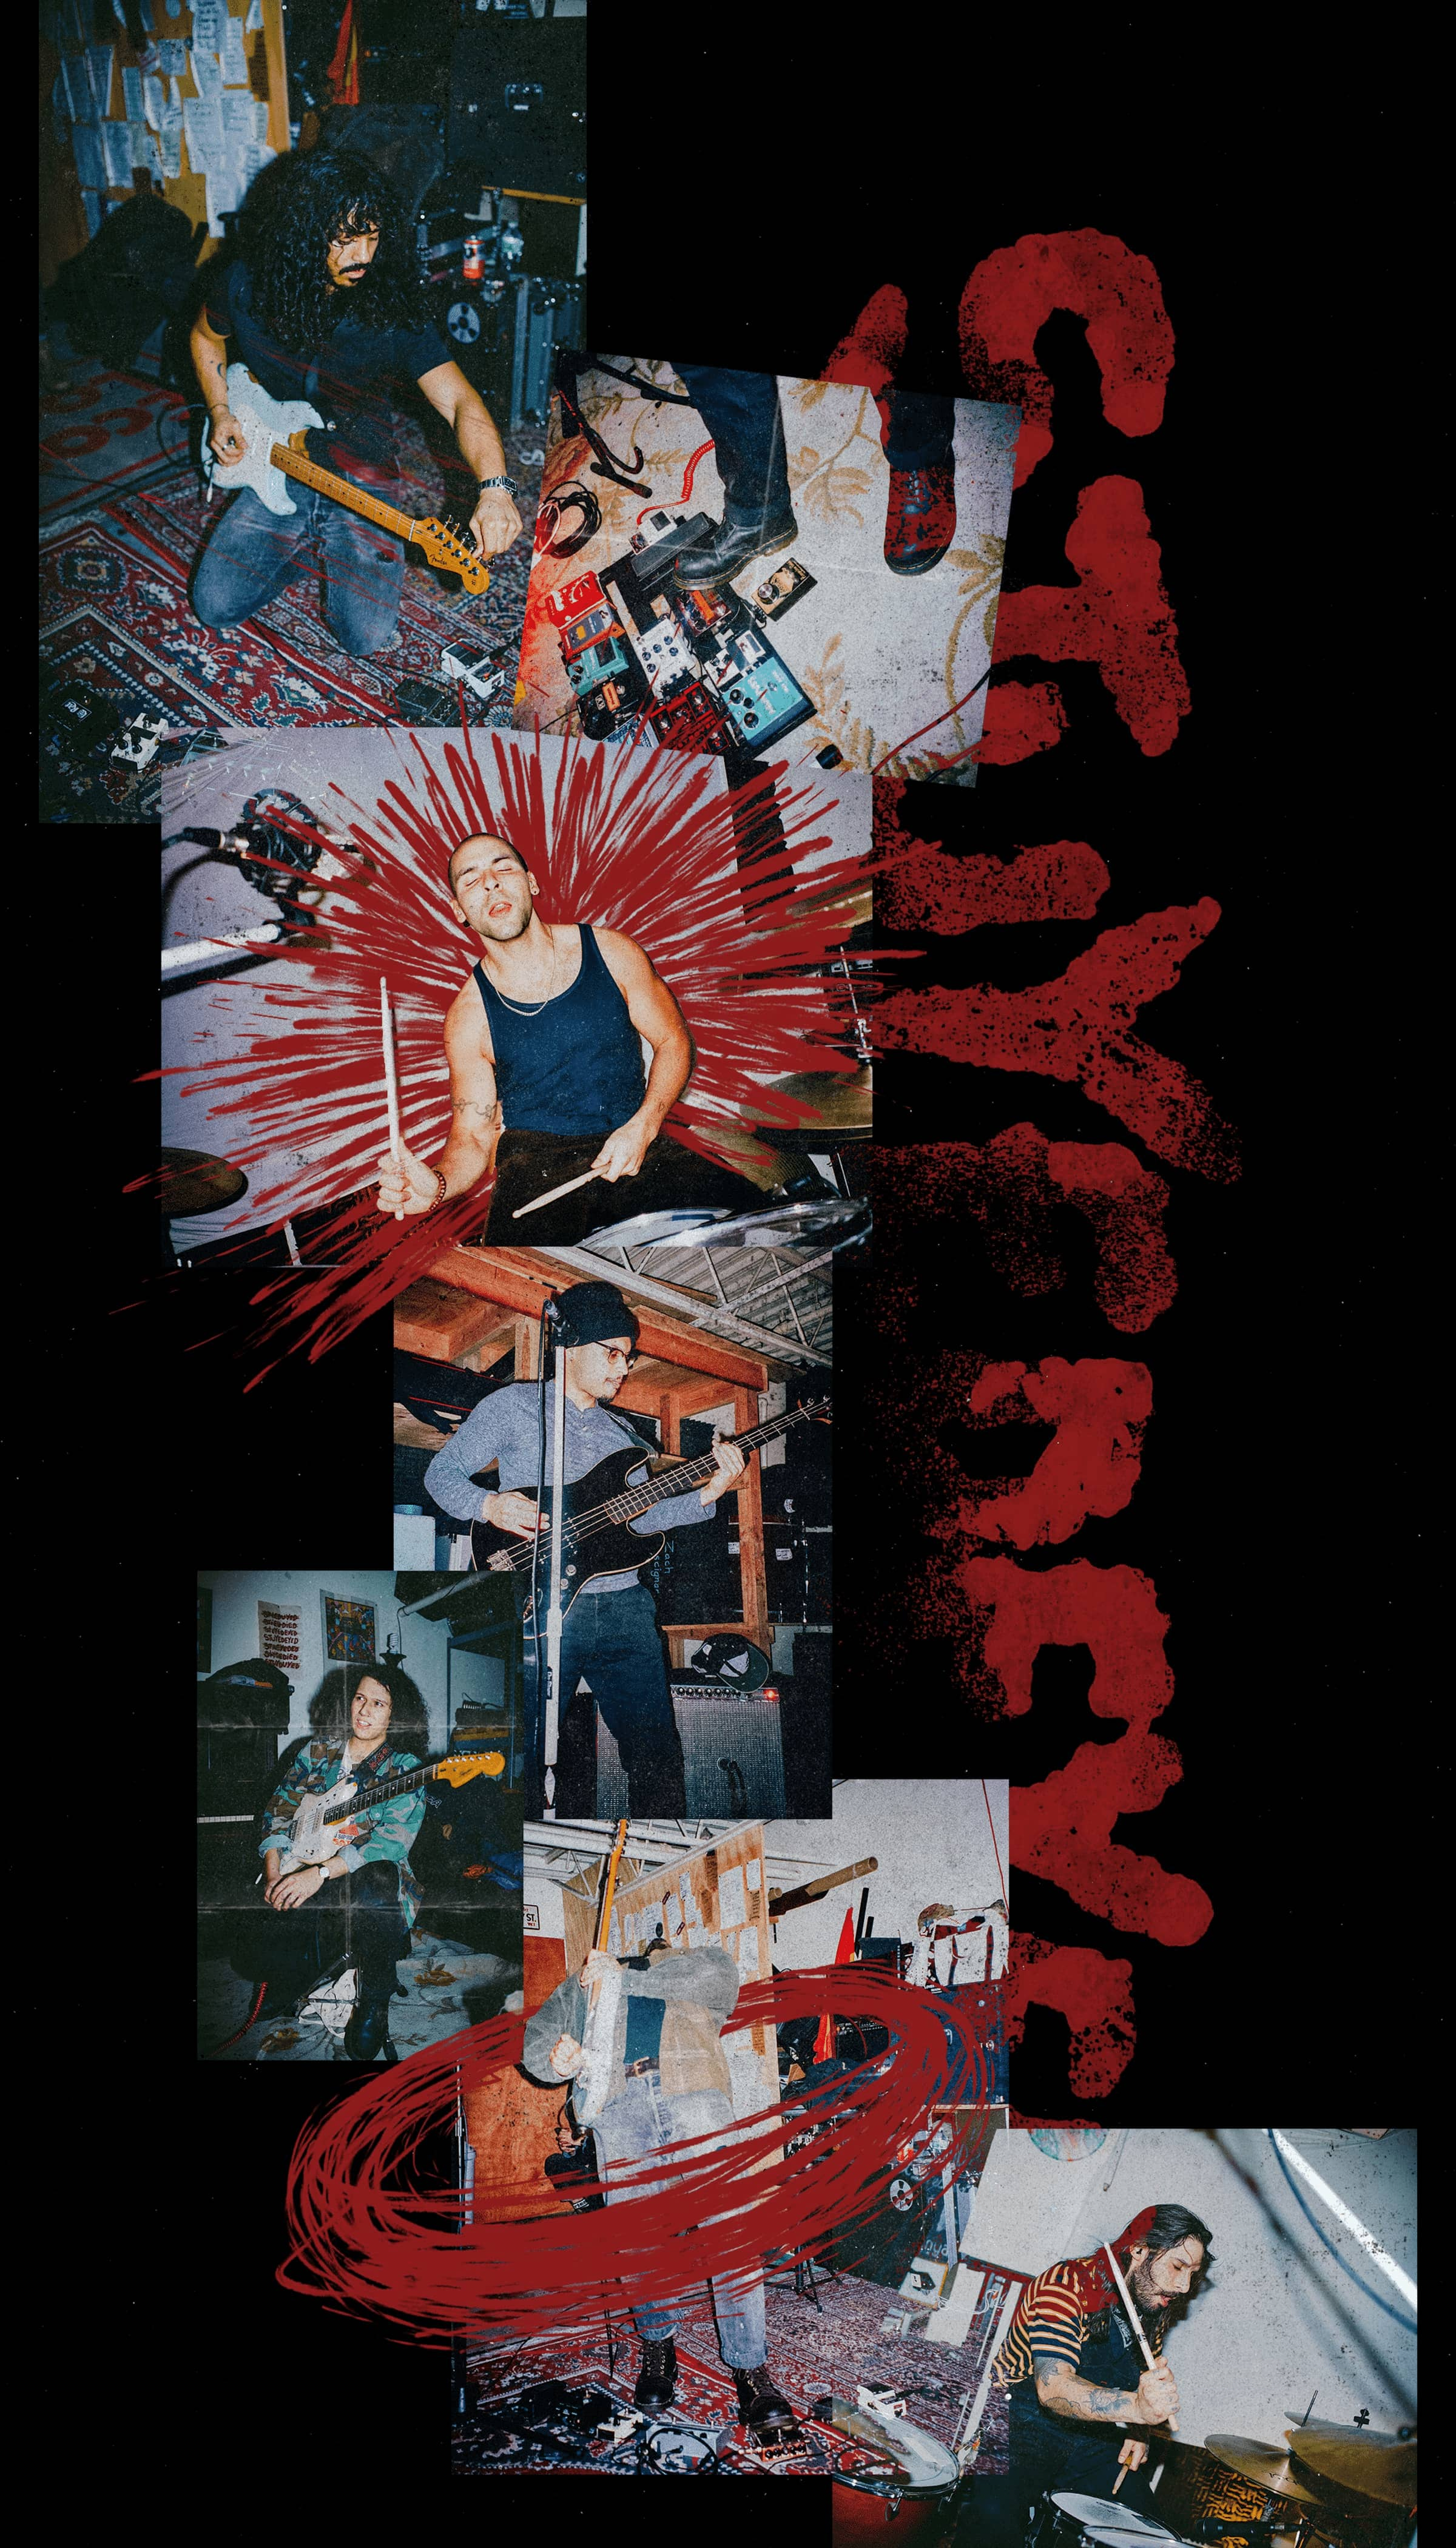 """A collage of photos of the band playing music, possibly in a basement. Red action lines are featured text: """"stuyedeyed""""."""